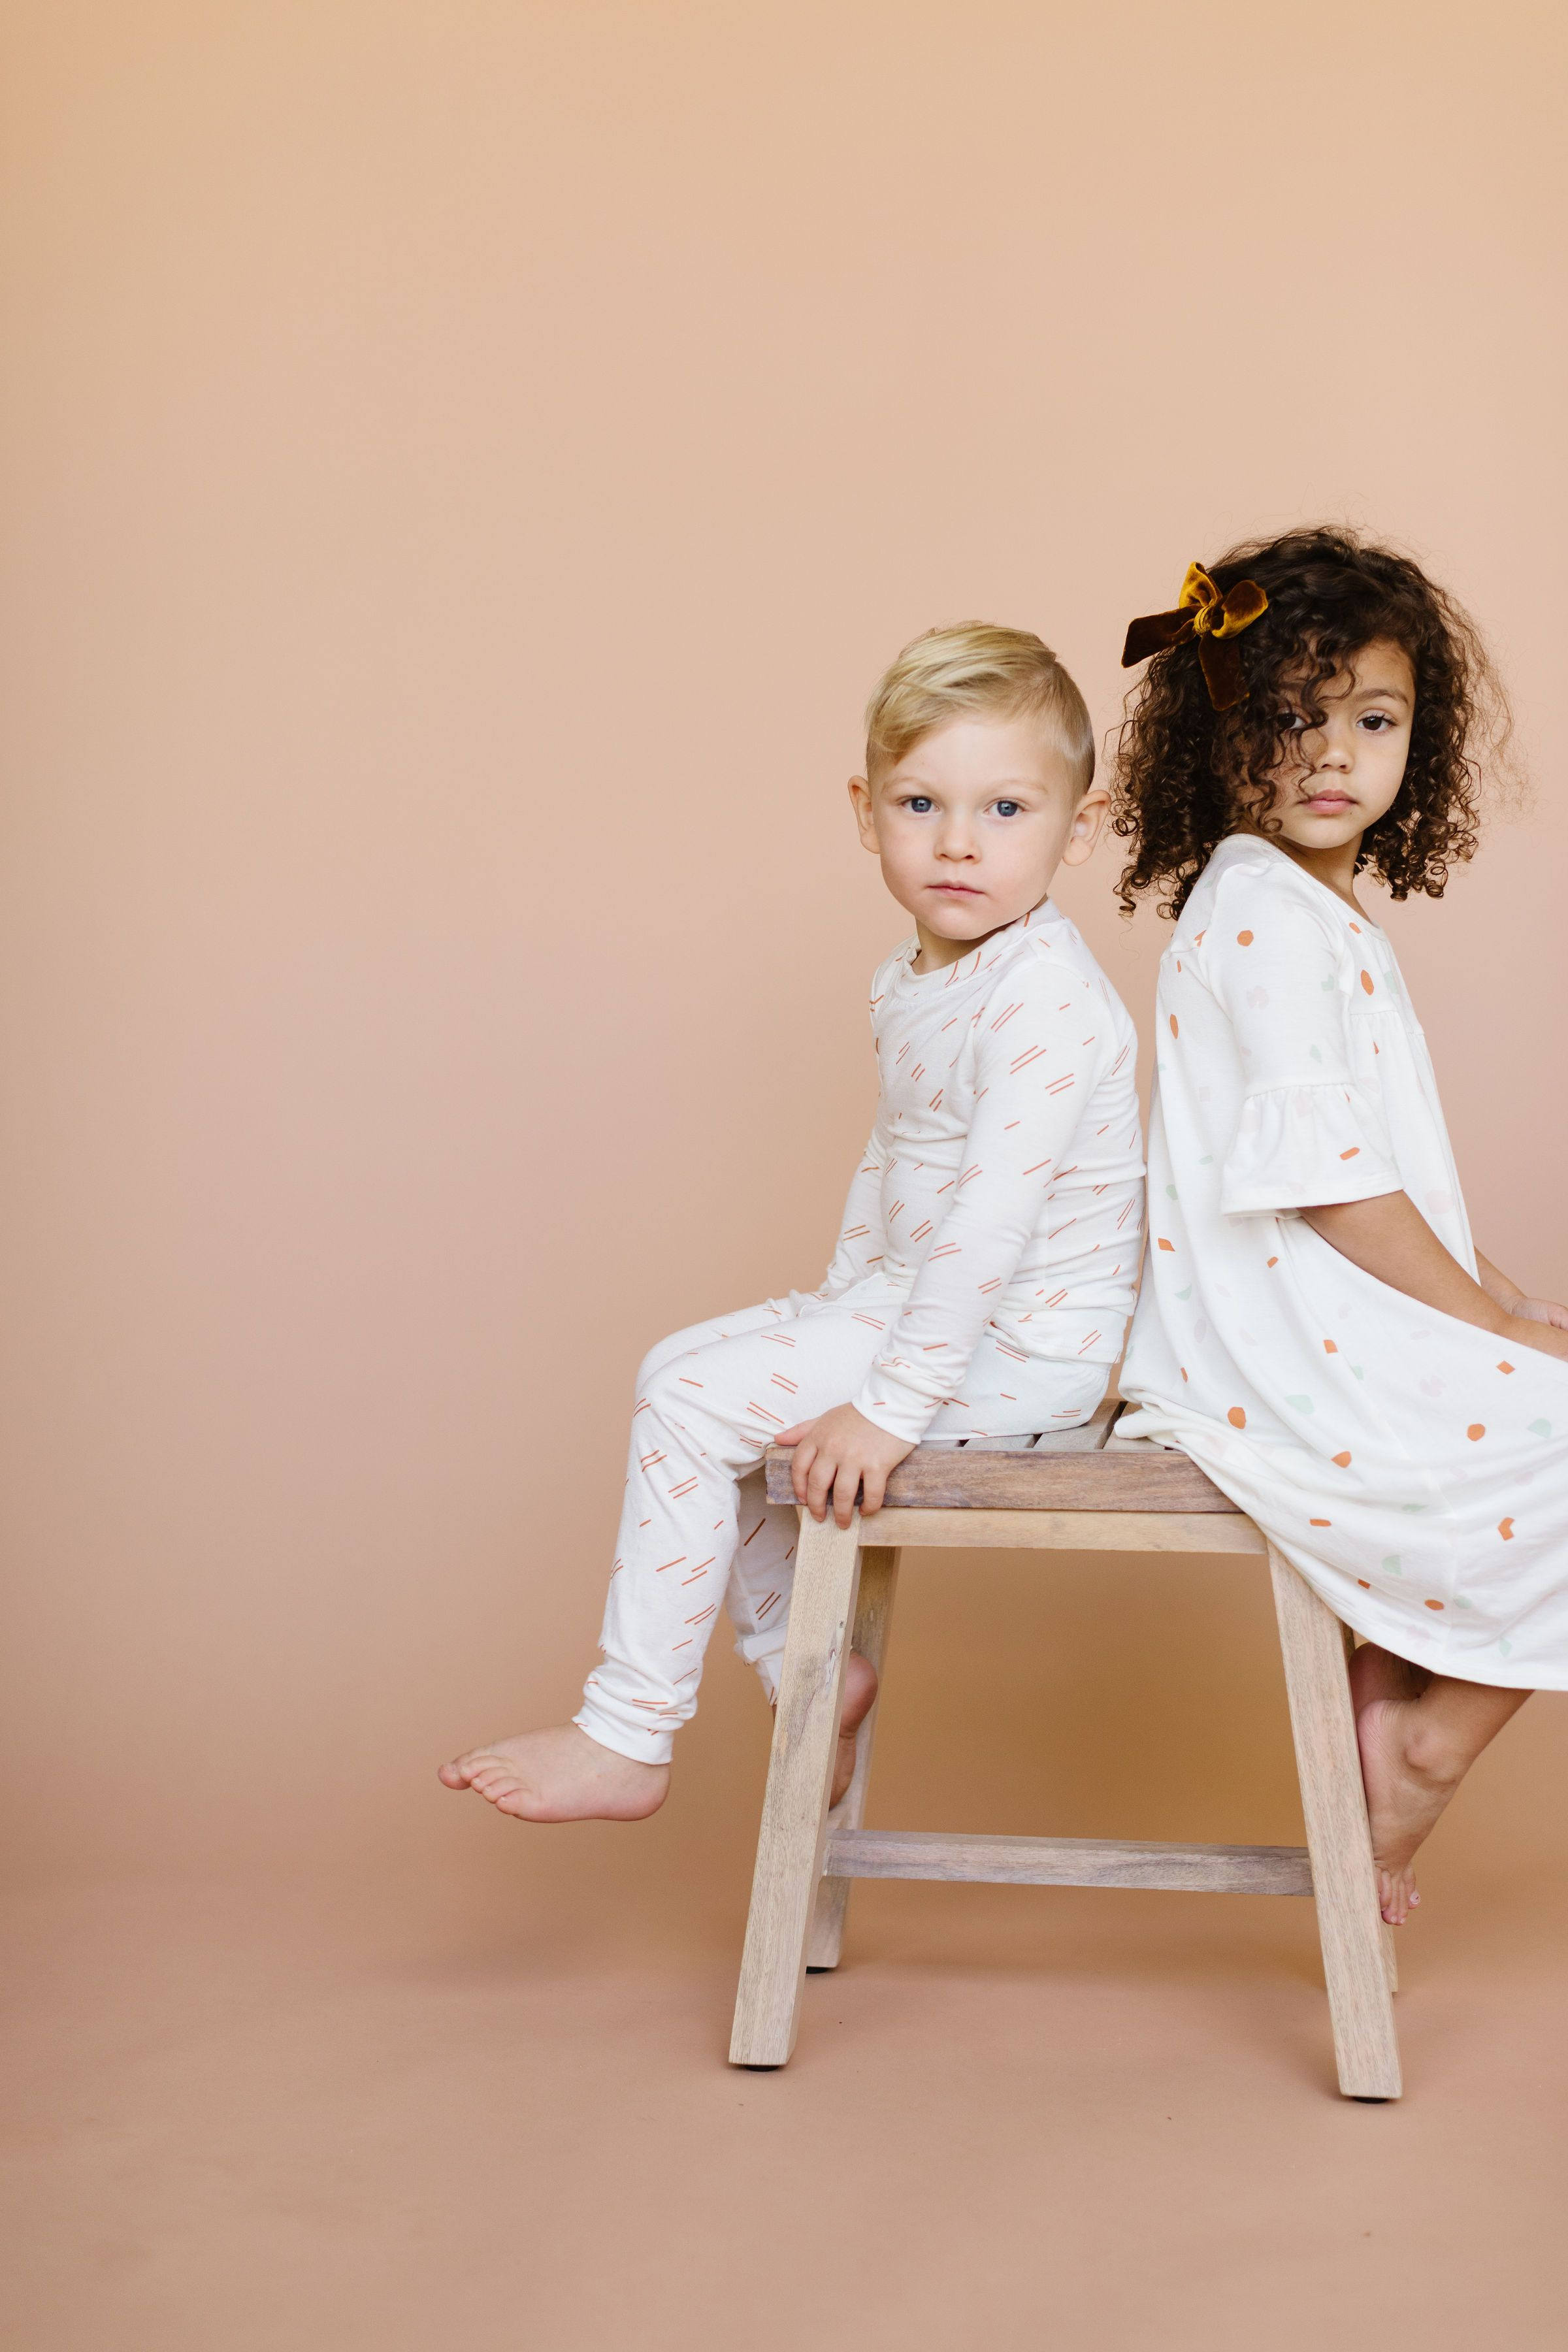 Timeless Comfortable And Adorable Pajamas And Gowns For Kids From Plain Jane Perfect For The Holidays Kids Gown Toddler Nightgown Kids Fashion